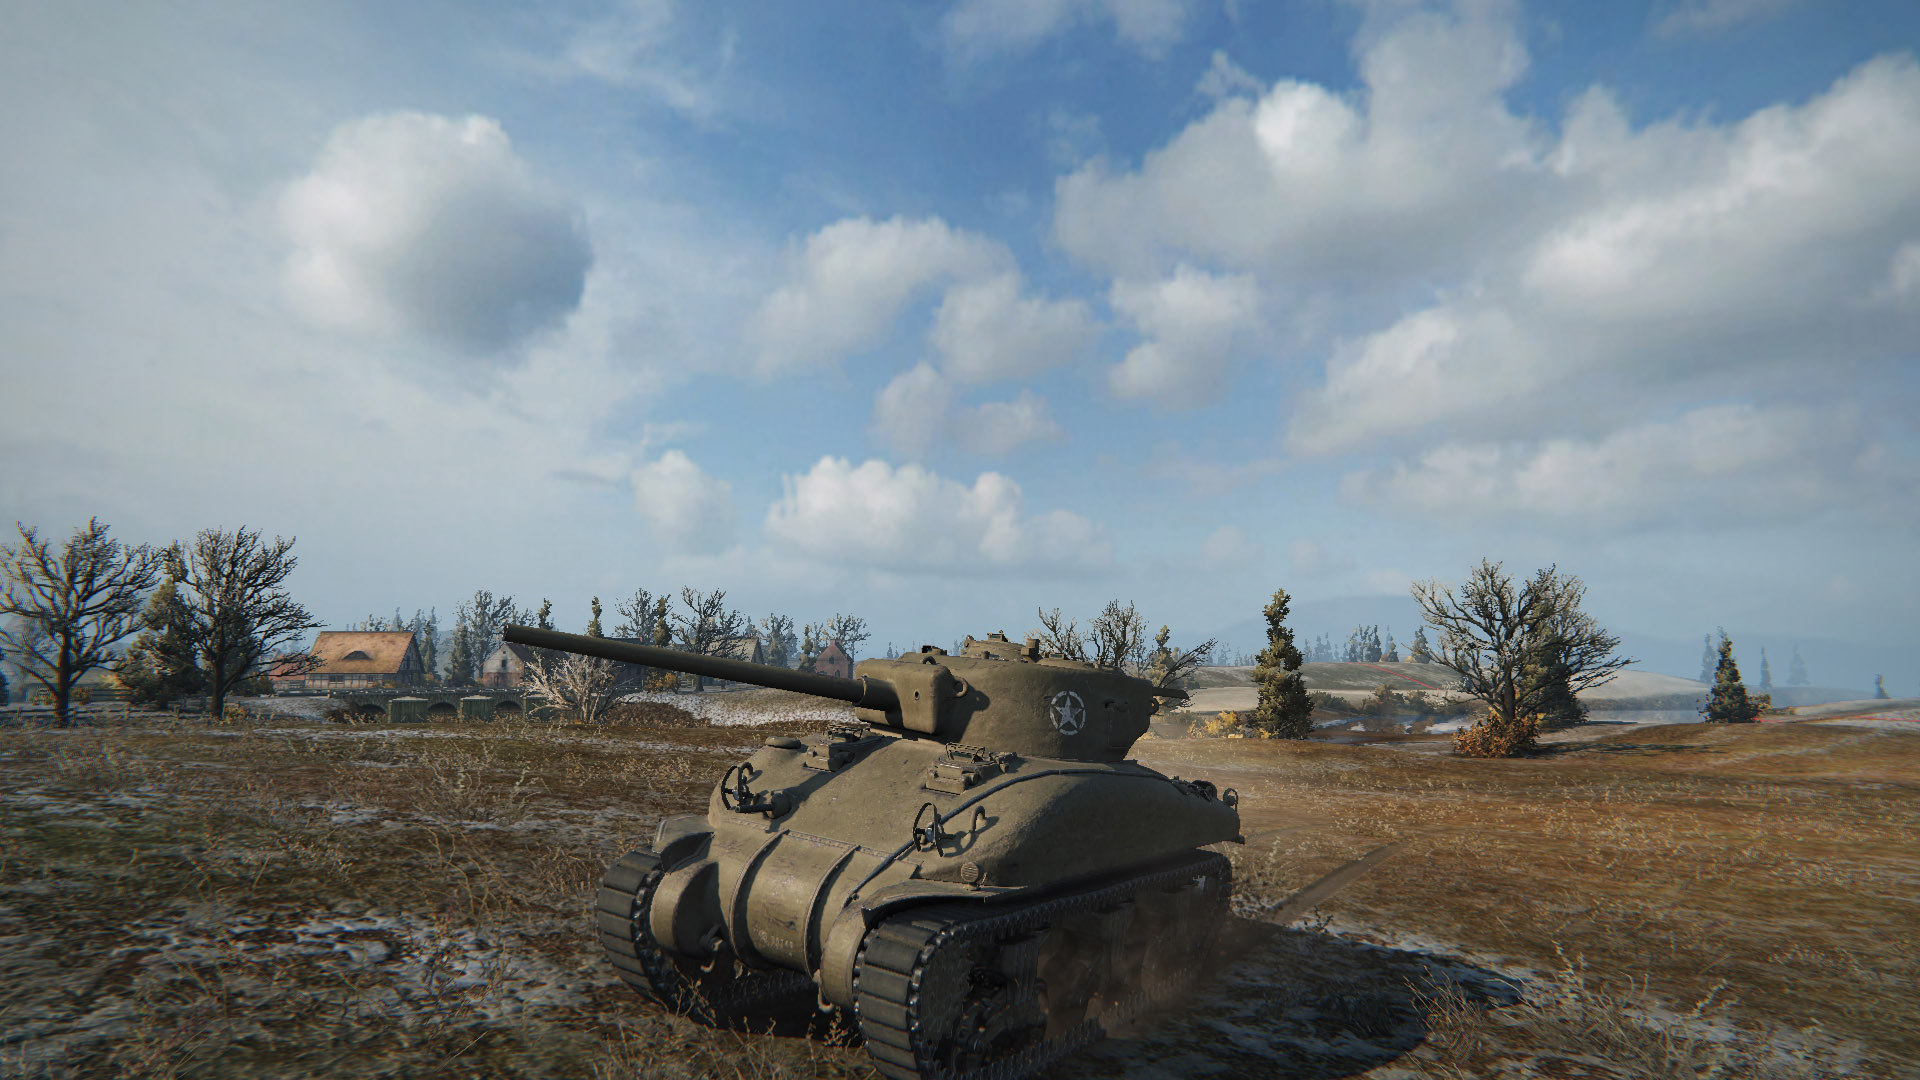 The M4 Sherman saw its first battle in Second Battle of El Alamein.